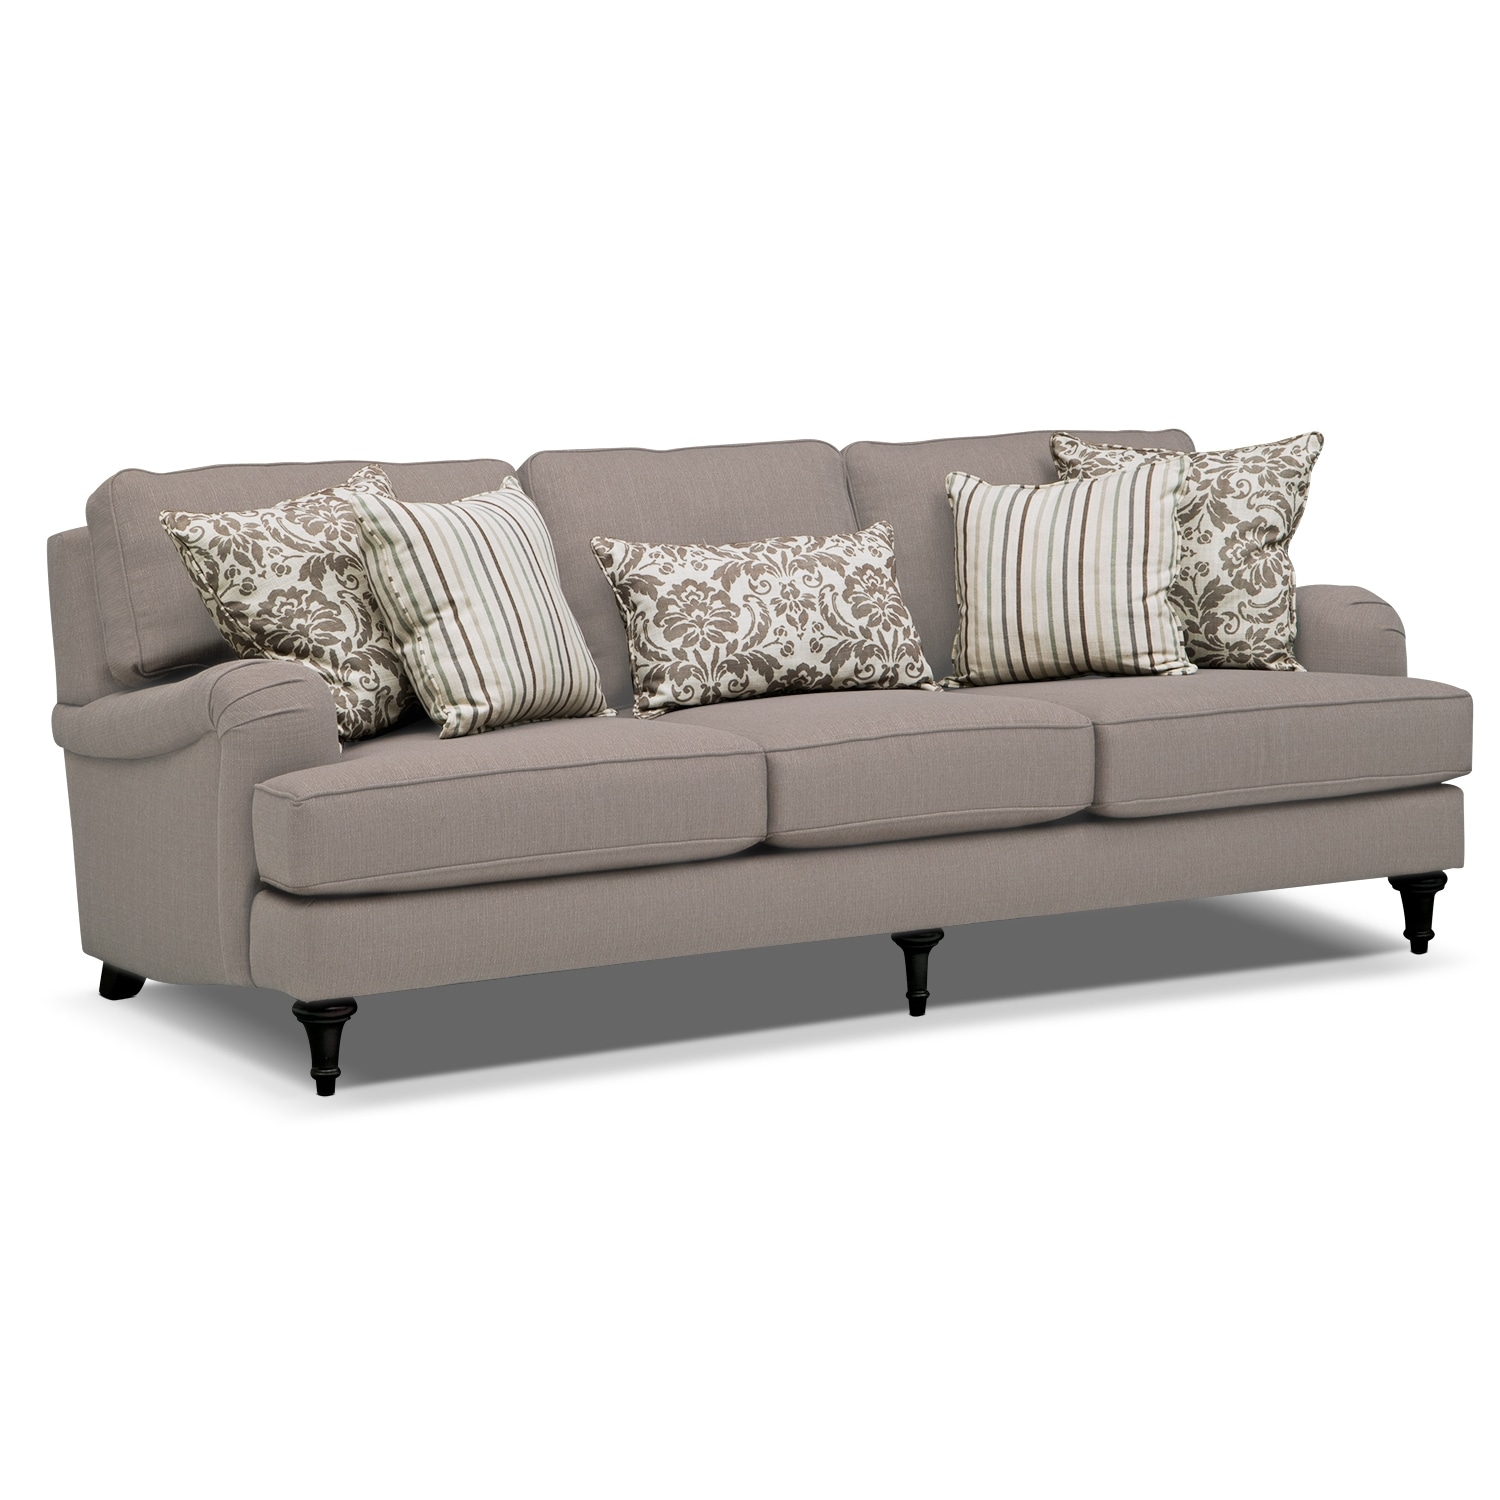 Candice sofa value city furniture for Furniture sofas and couches